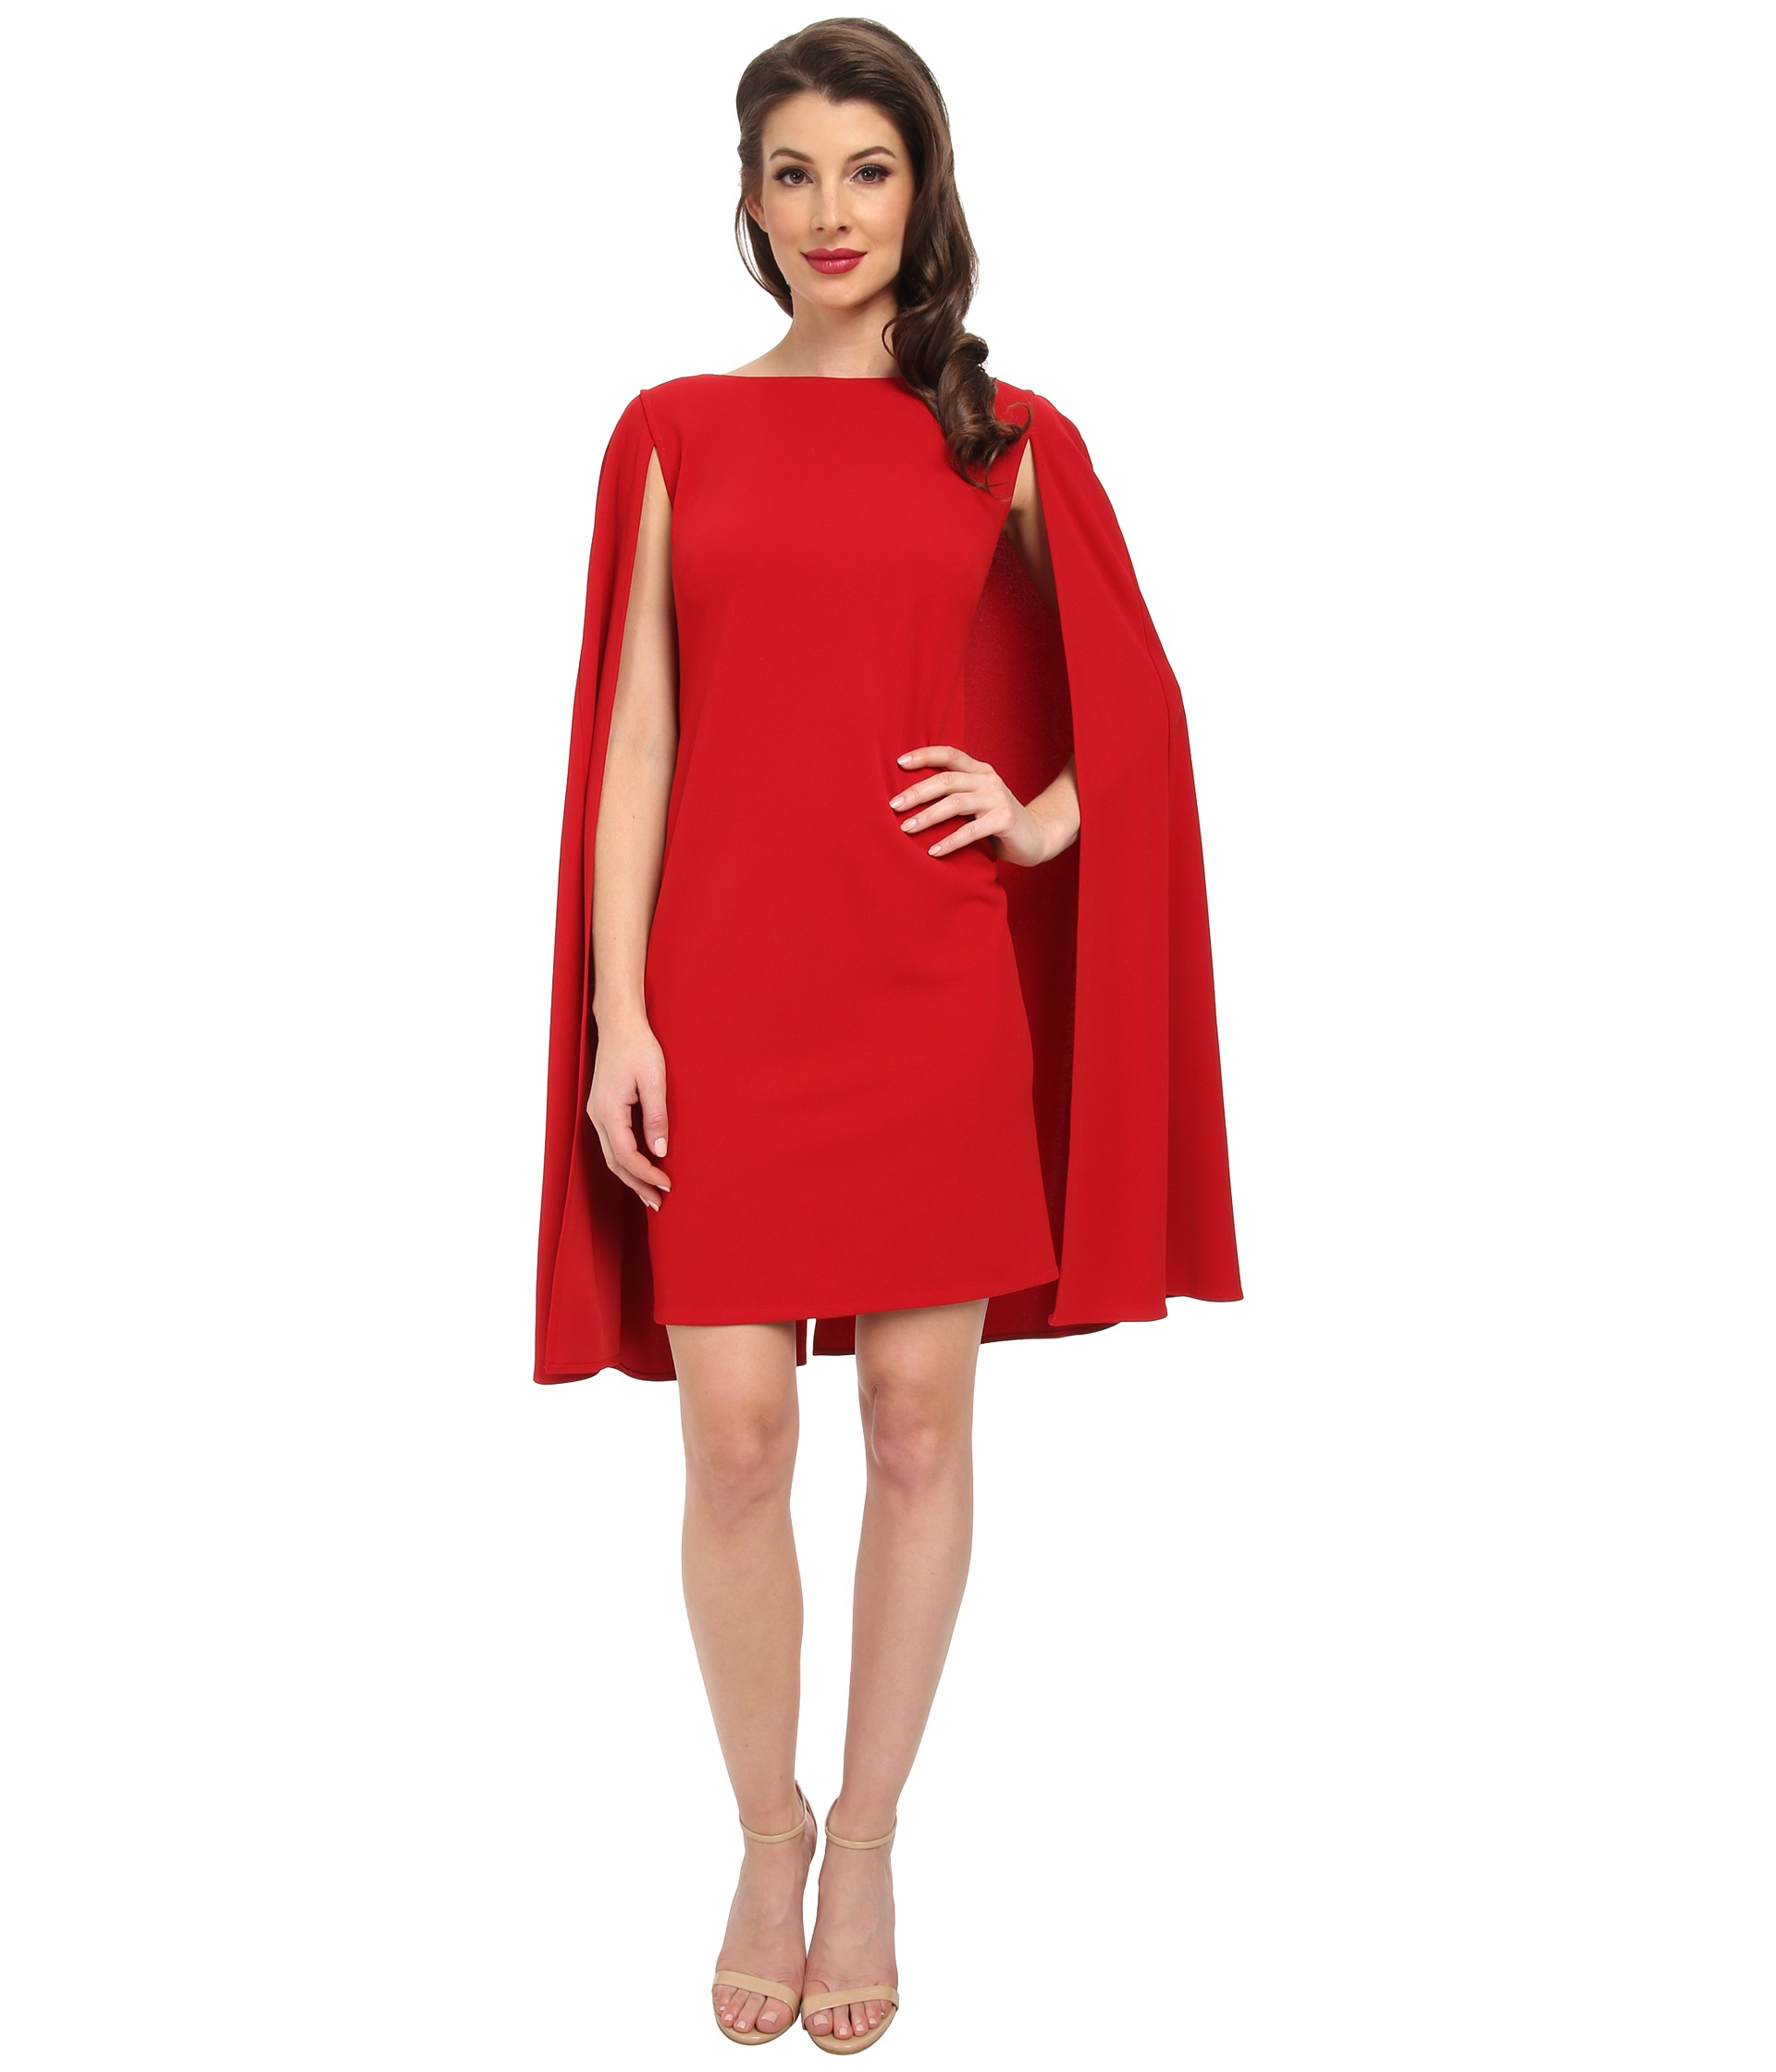 Galerry sheath dress with back zipper